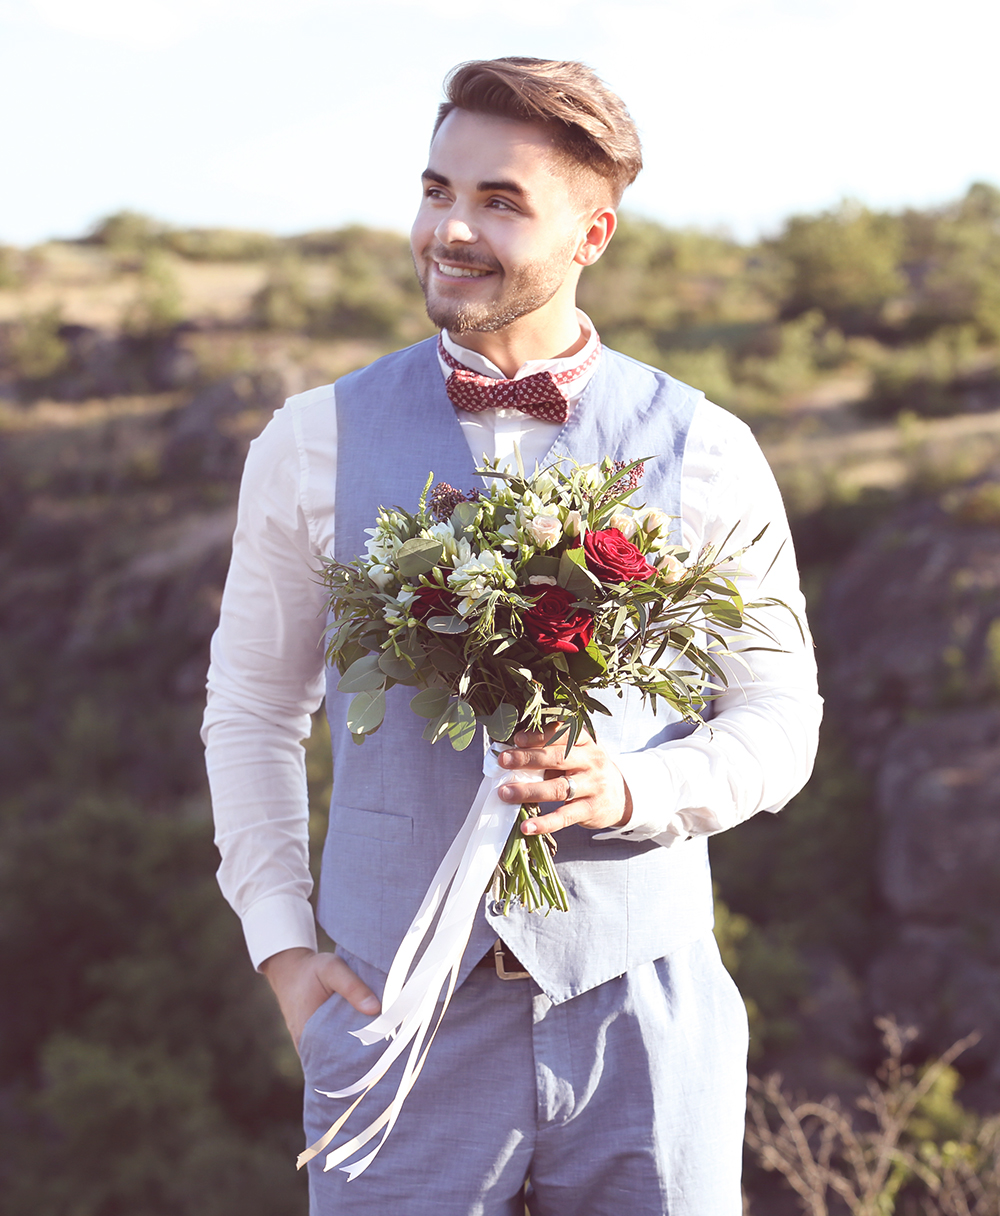 Best Wedding Party For Men And Women's